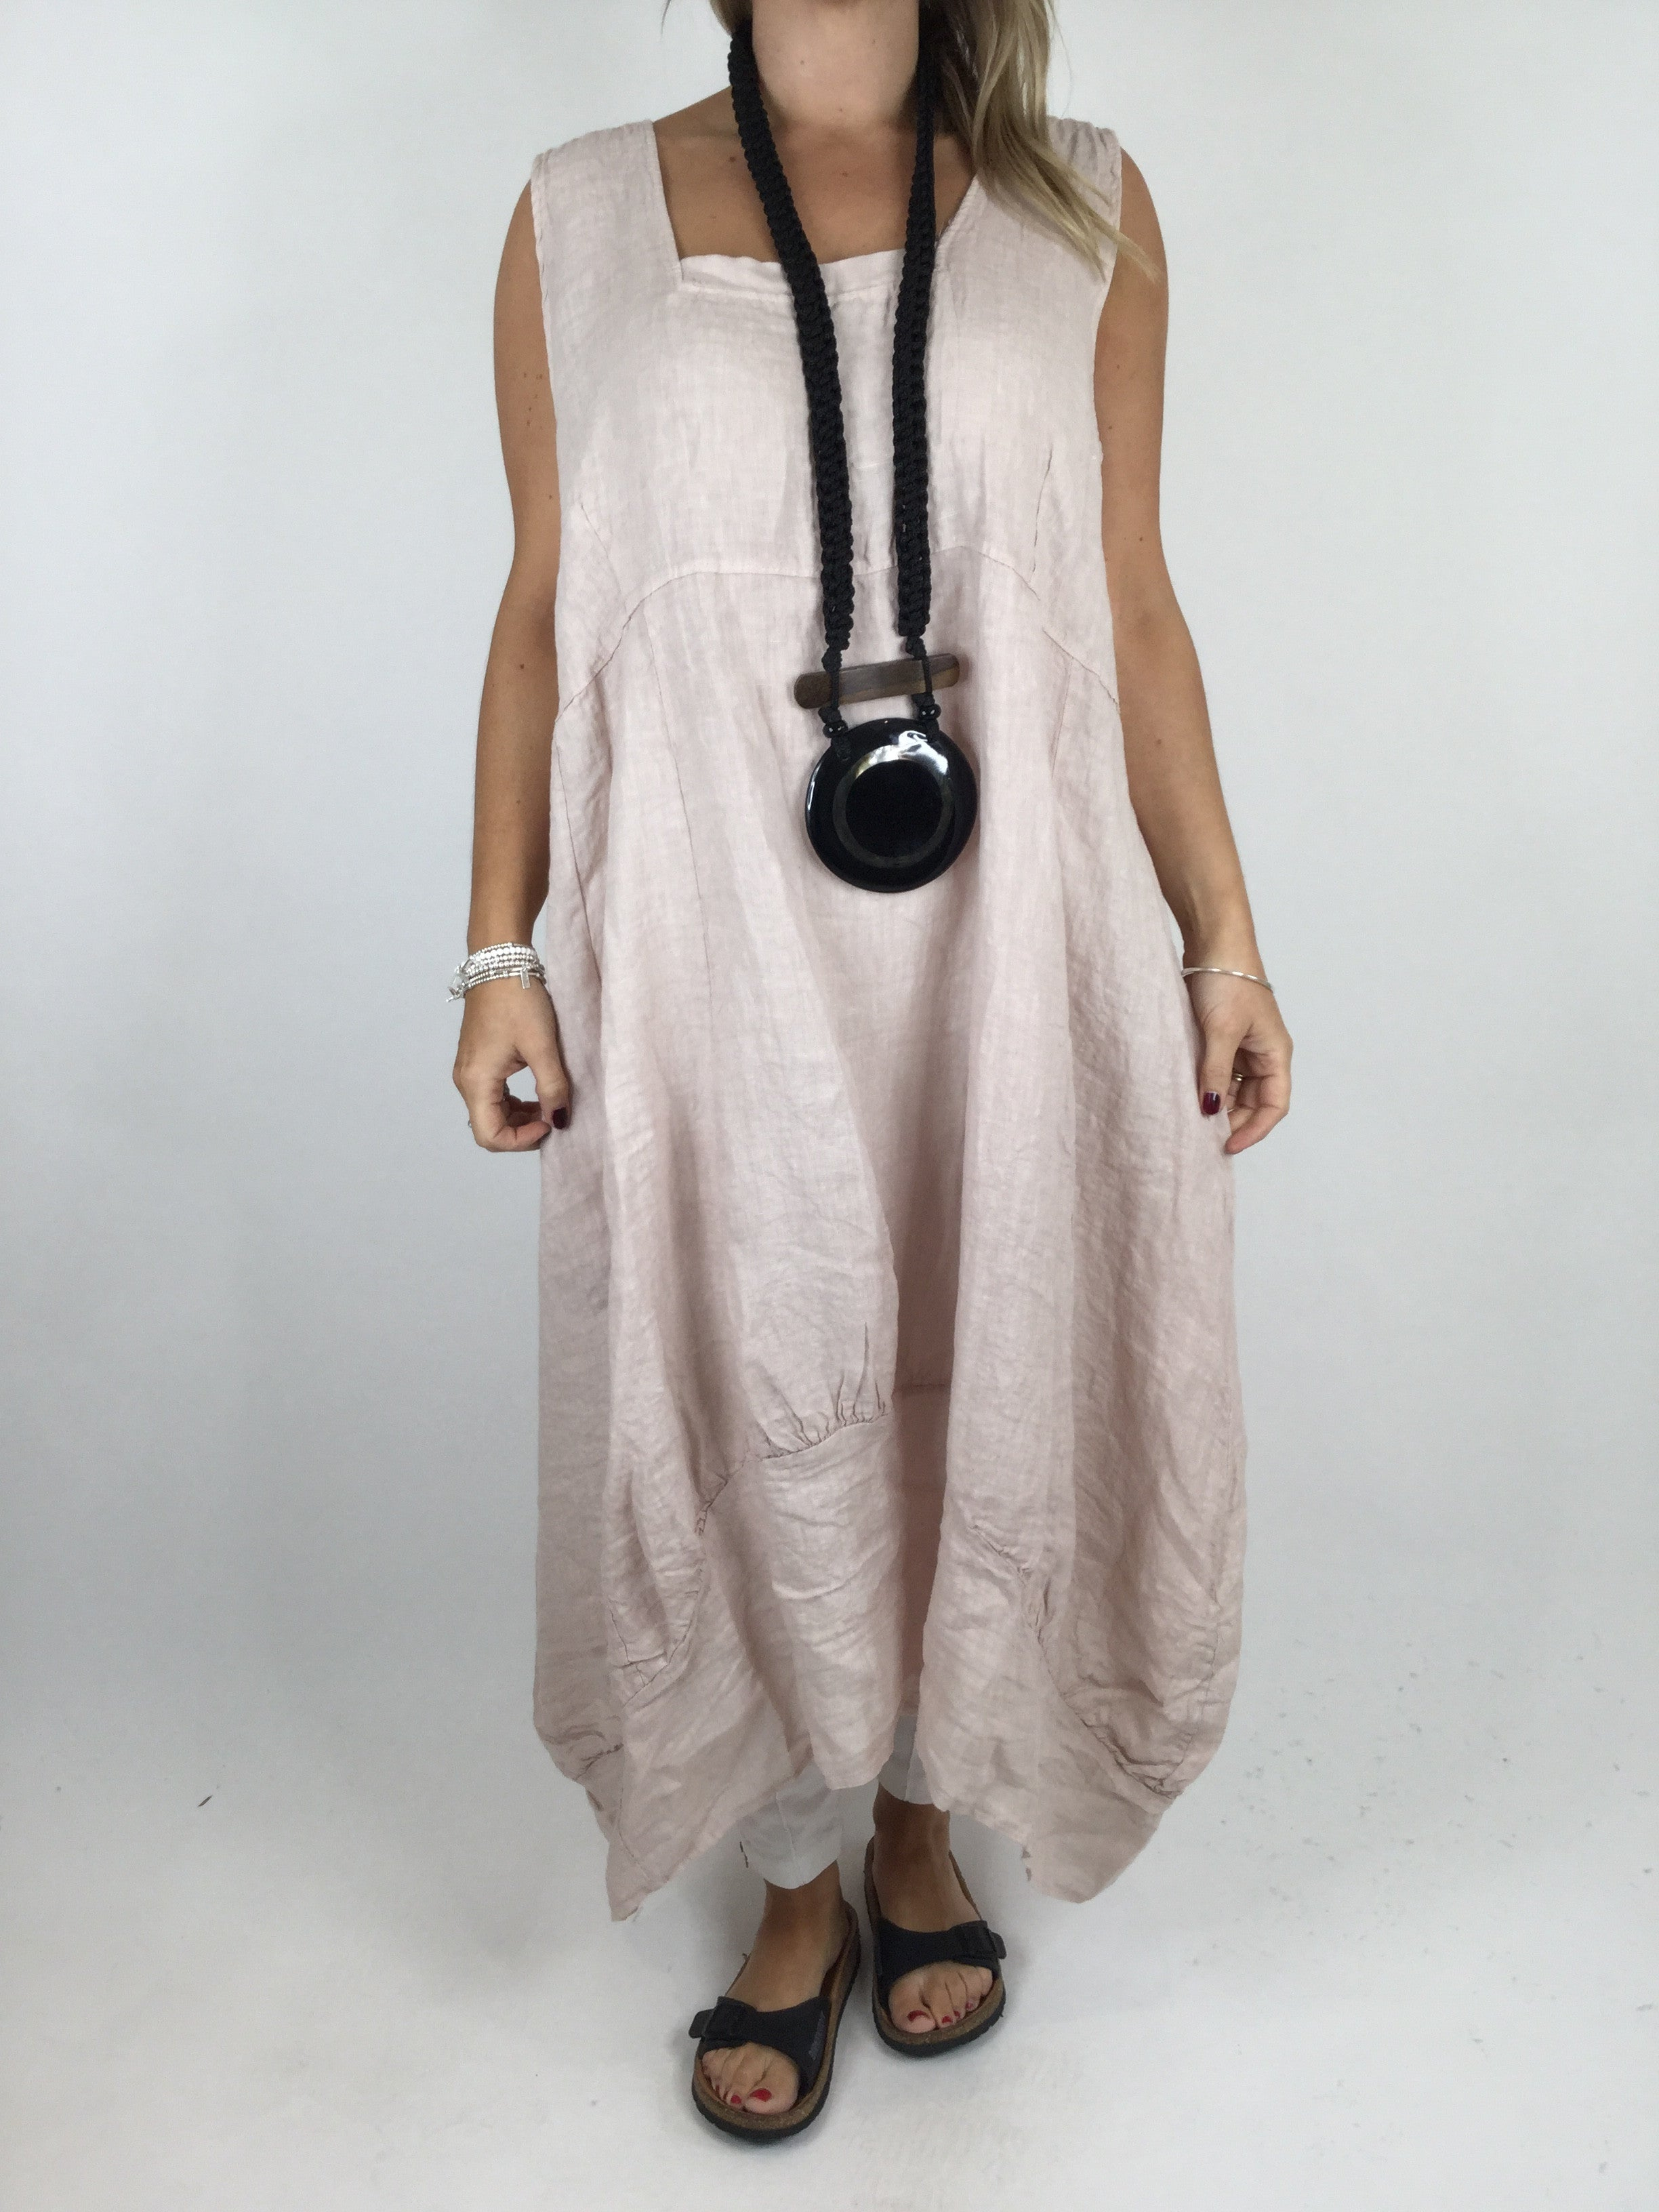 ef82f3f2a1d Lagenlook Square neck Linen Tunic Dress Top in Pale Pink. code 5698 -  Lagenlook Clothing UK